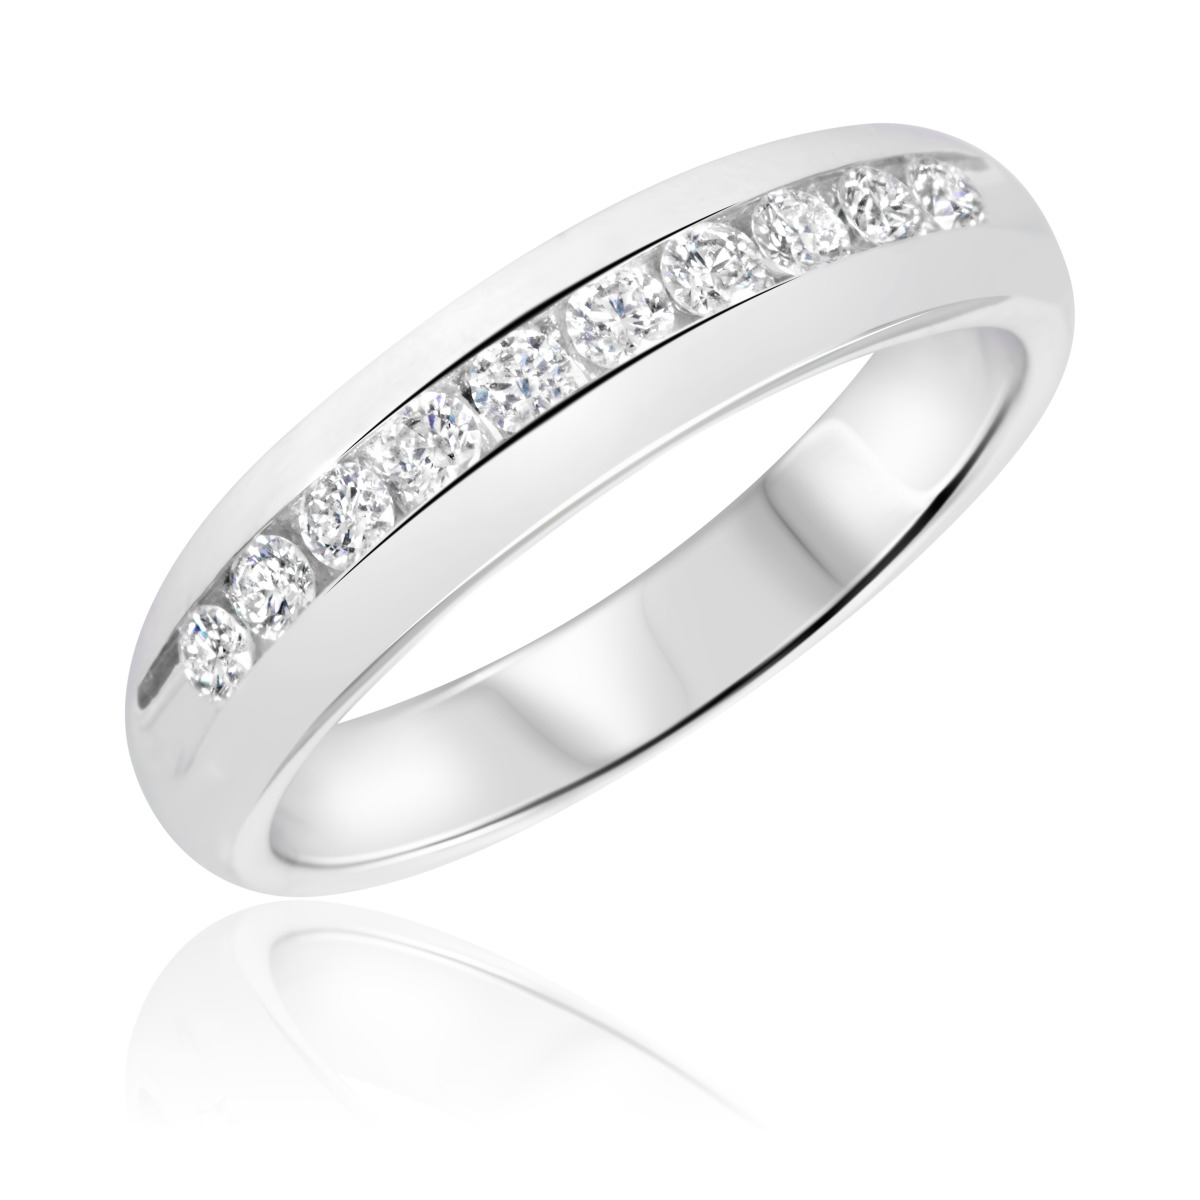 1 2 carat tw diamond men39s wedding ring 14k white gold for Mens wedding rings with diamonds white gold